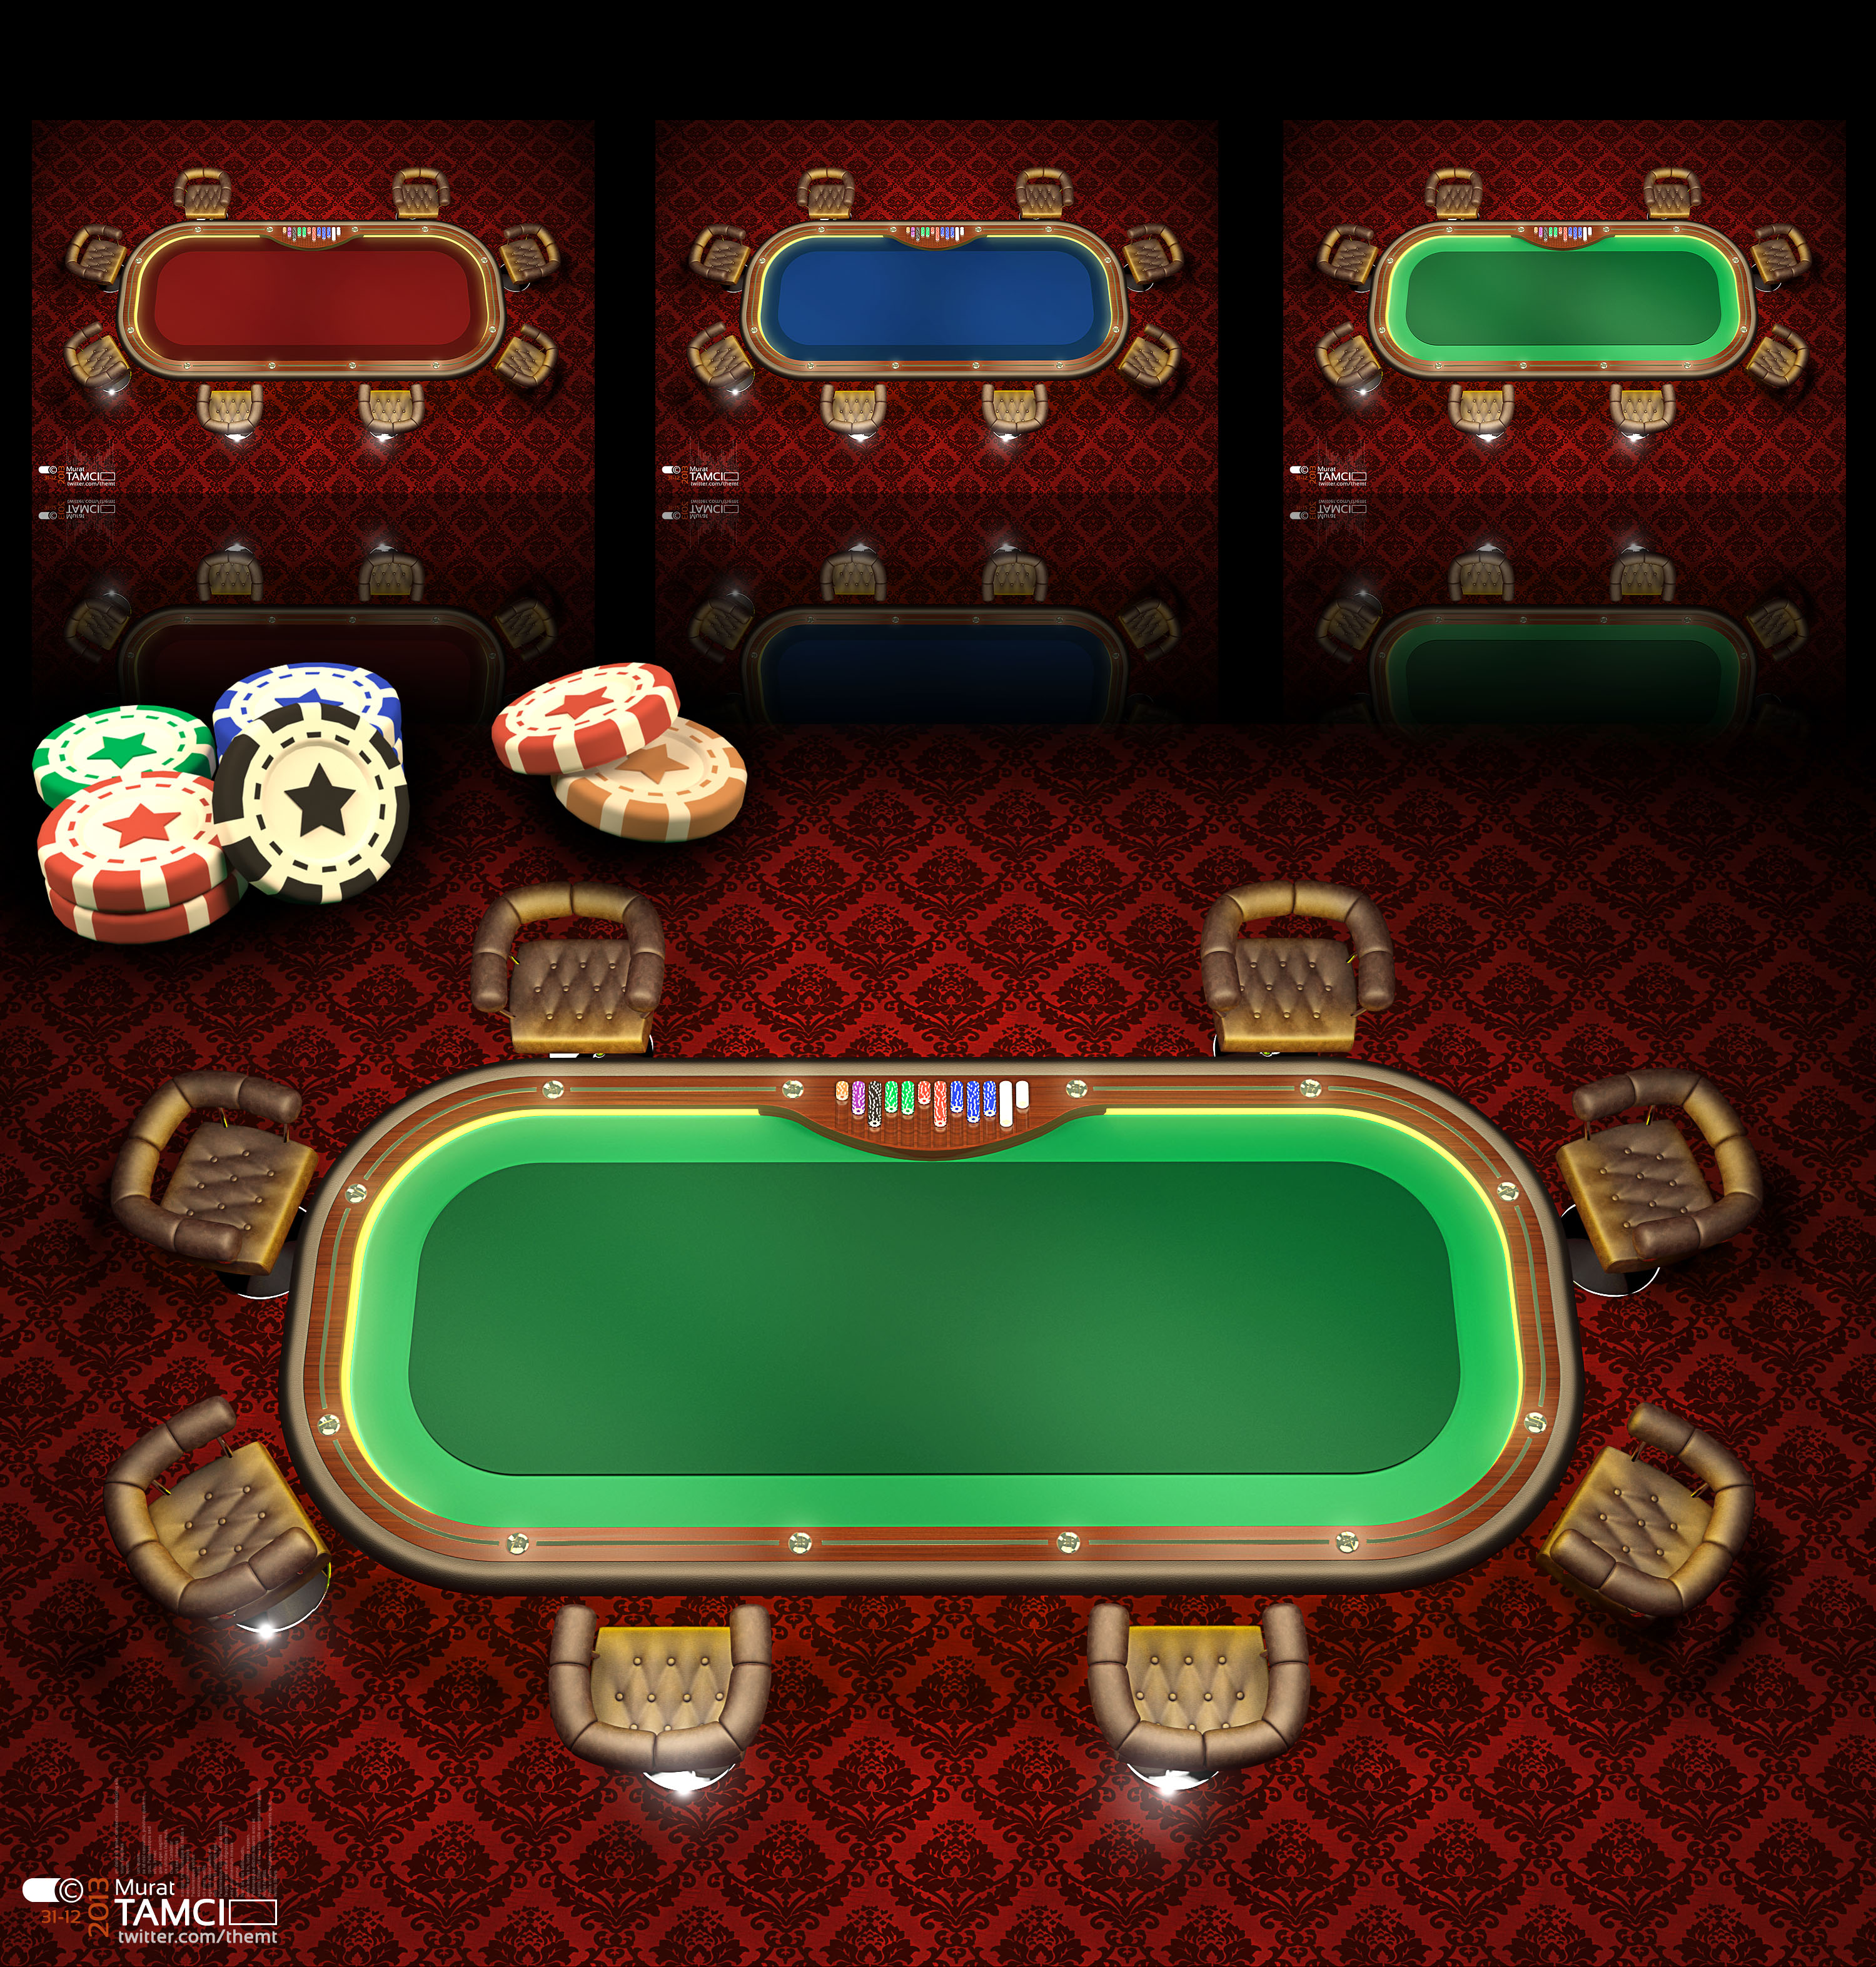 Poker Table v2 by themt